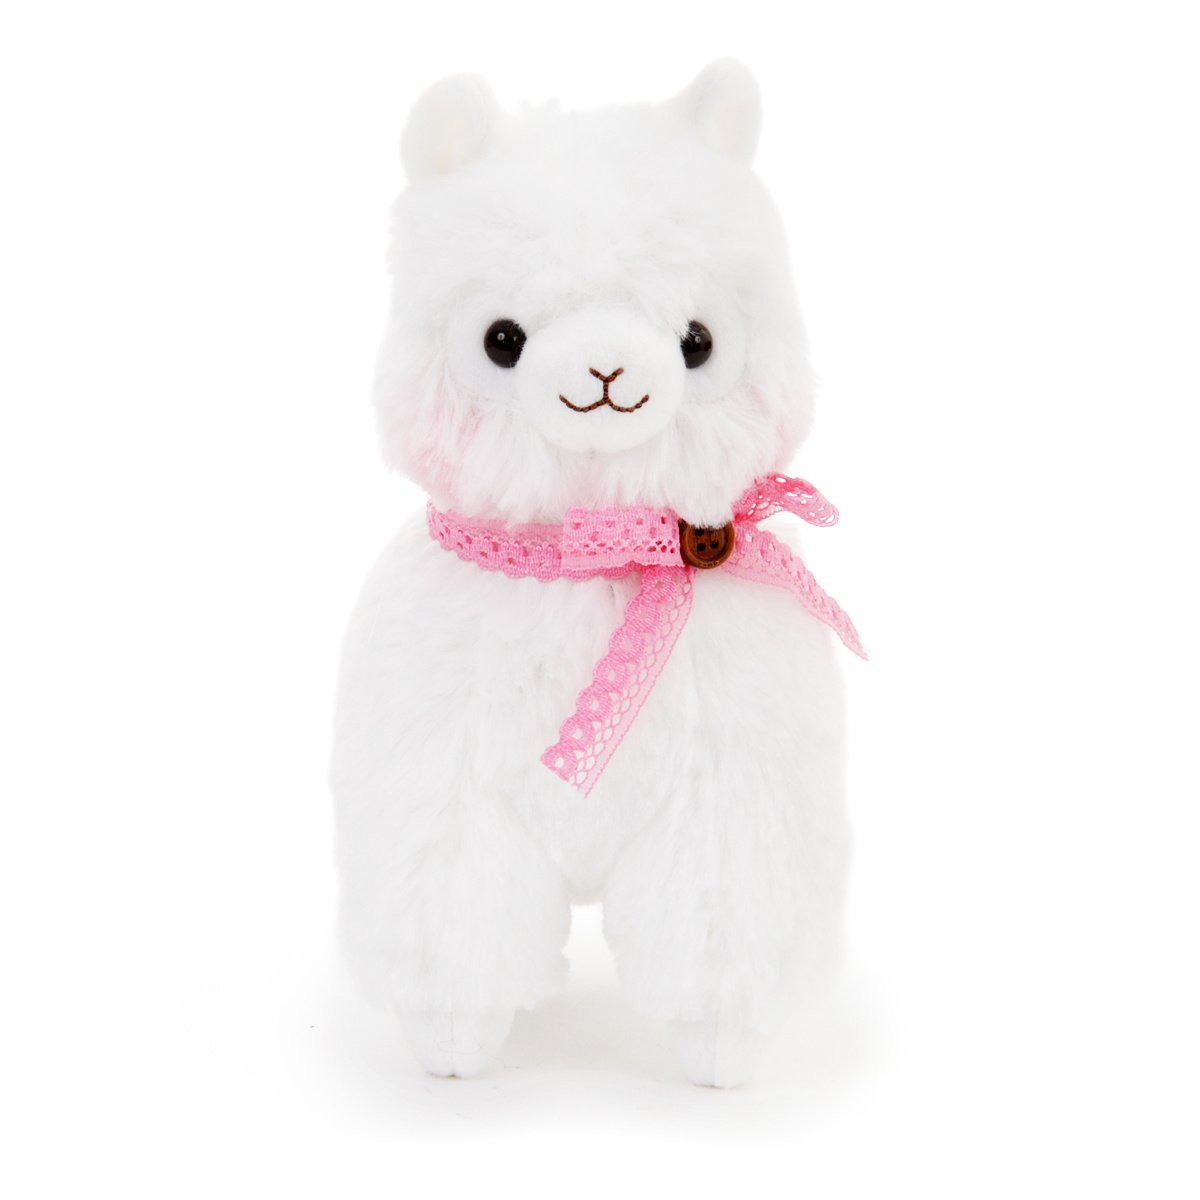 Plush Alpaca, Amuse, Alpacasso, Shiro-chan, White, 6 Inches